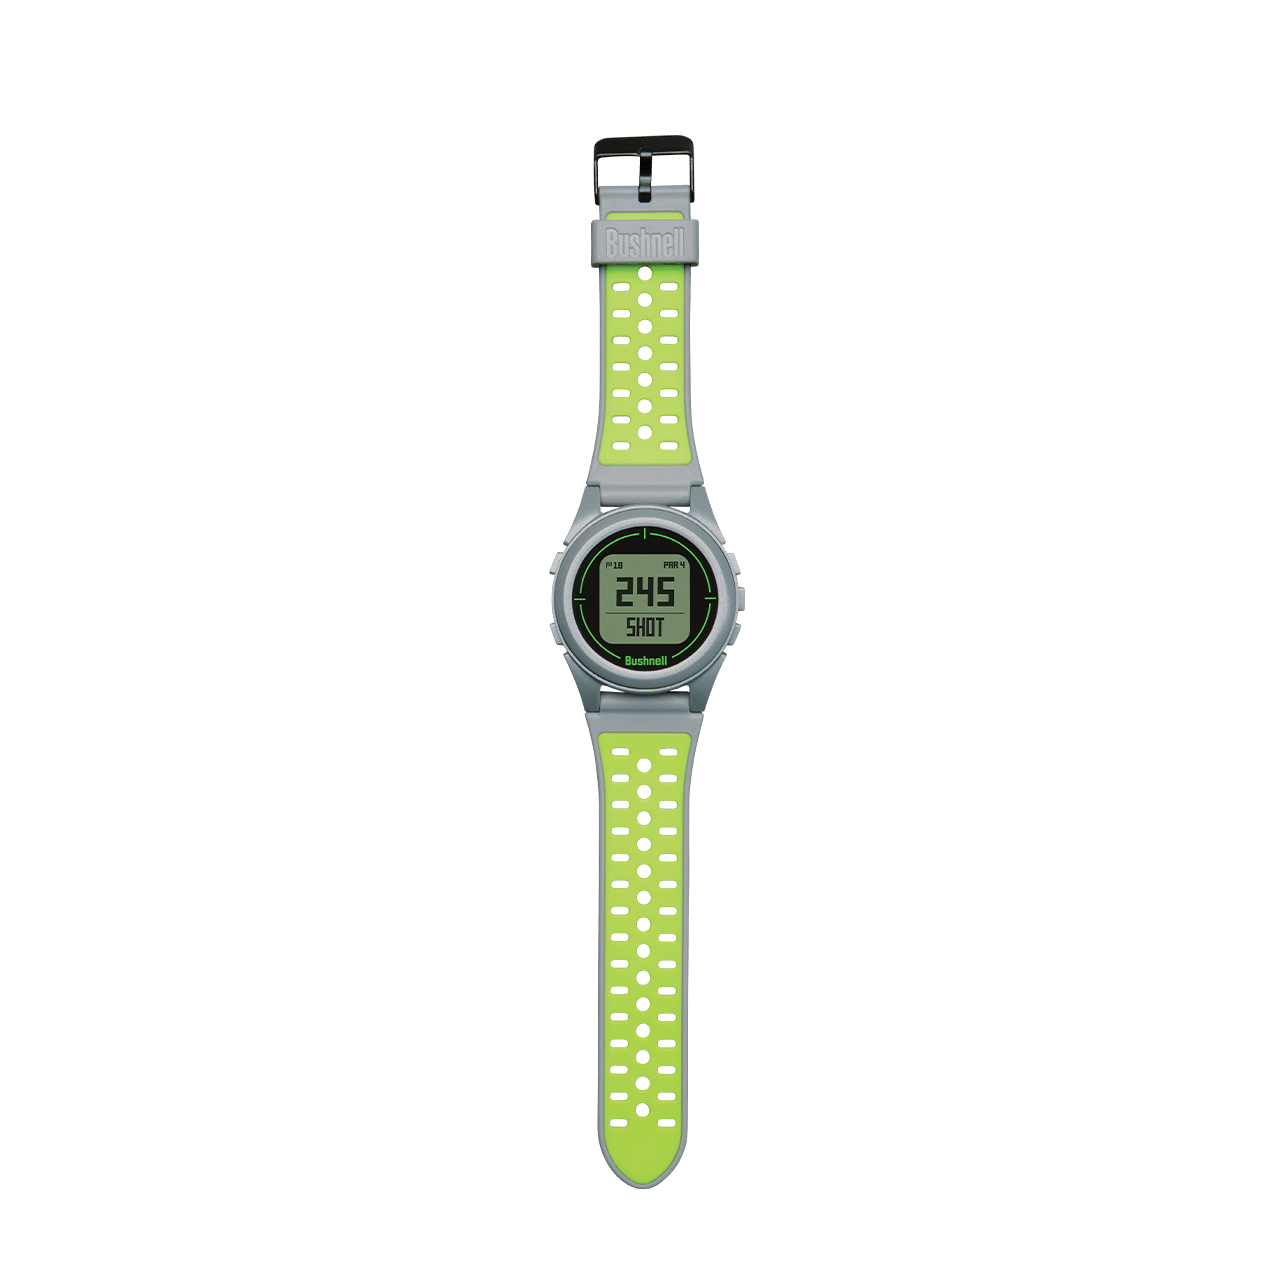 Montre golf Bushnell Neo iON 2